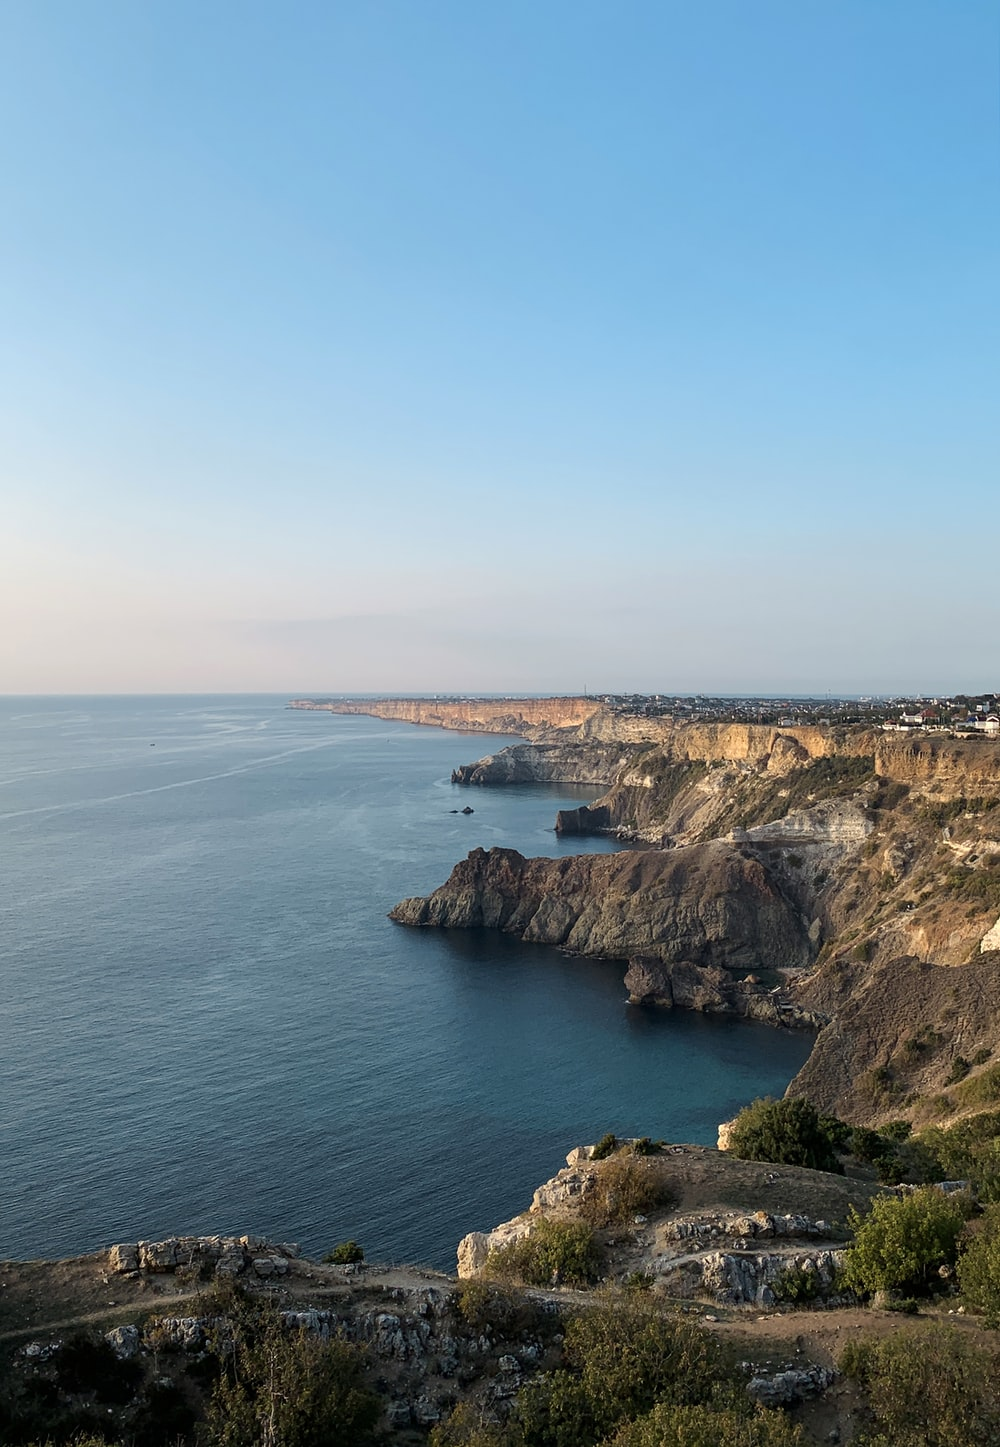 brown and green cliff beside sea under blue sky during daytime